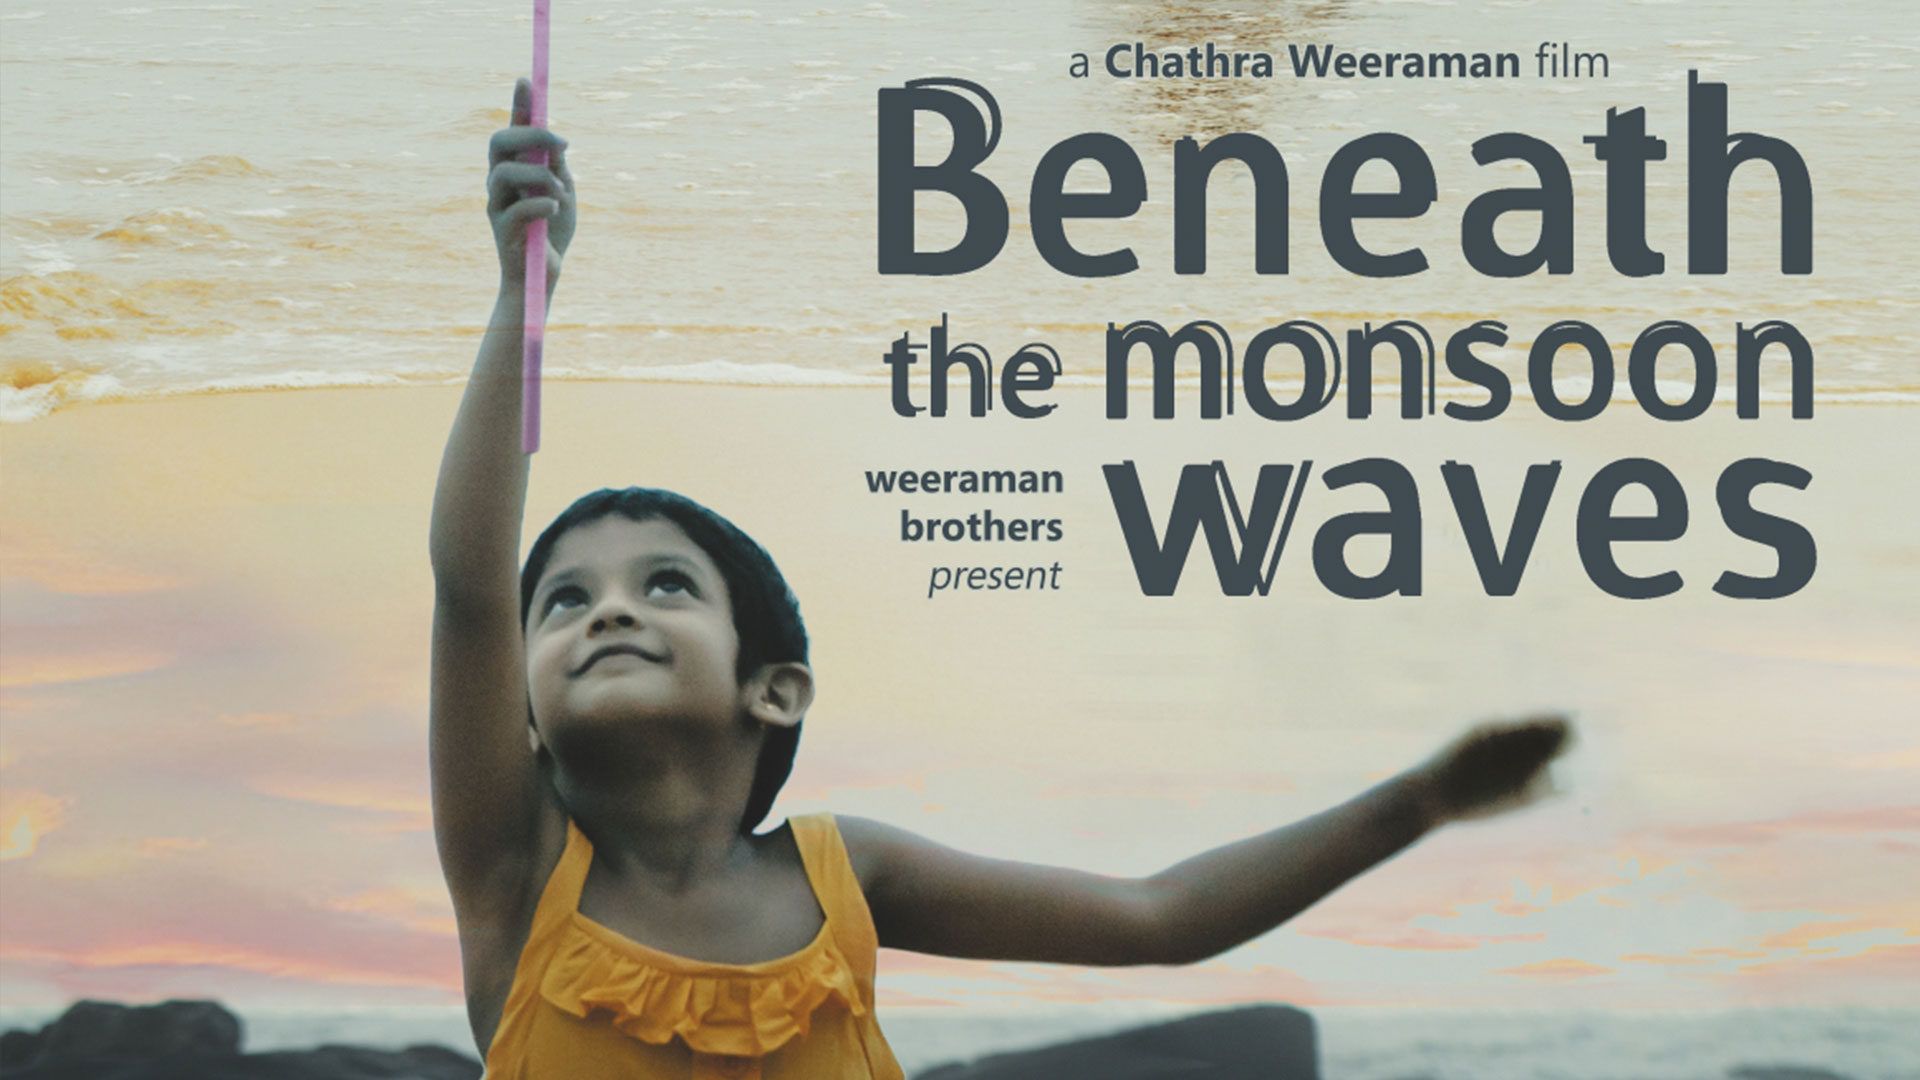 Beneath - The Monsoon Waves